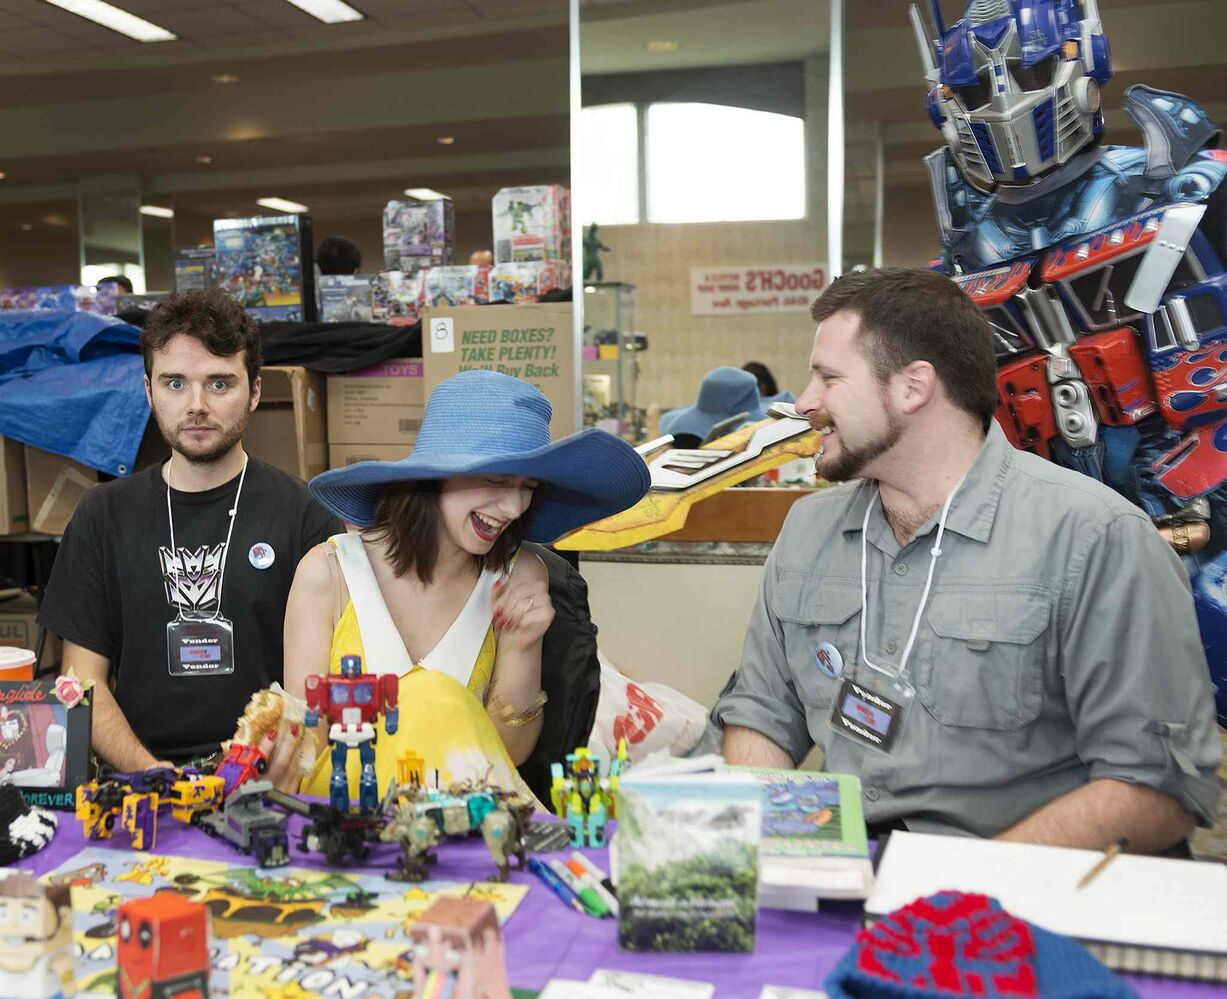 Optimus Prime photobombs William O'Donnell, Stacie Gagnon and Bart Rucinski at their Yak and Shadow vendor at Saturday's Transformers convention in the Clarion Hotel.